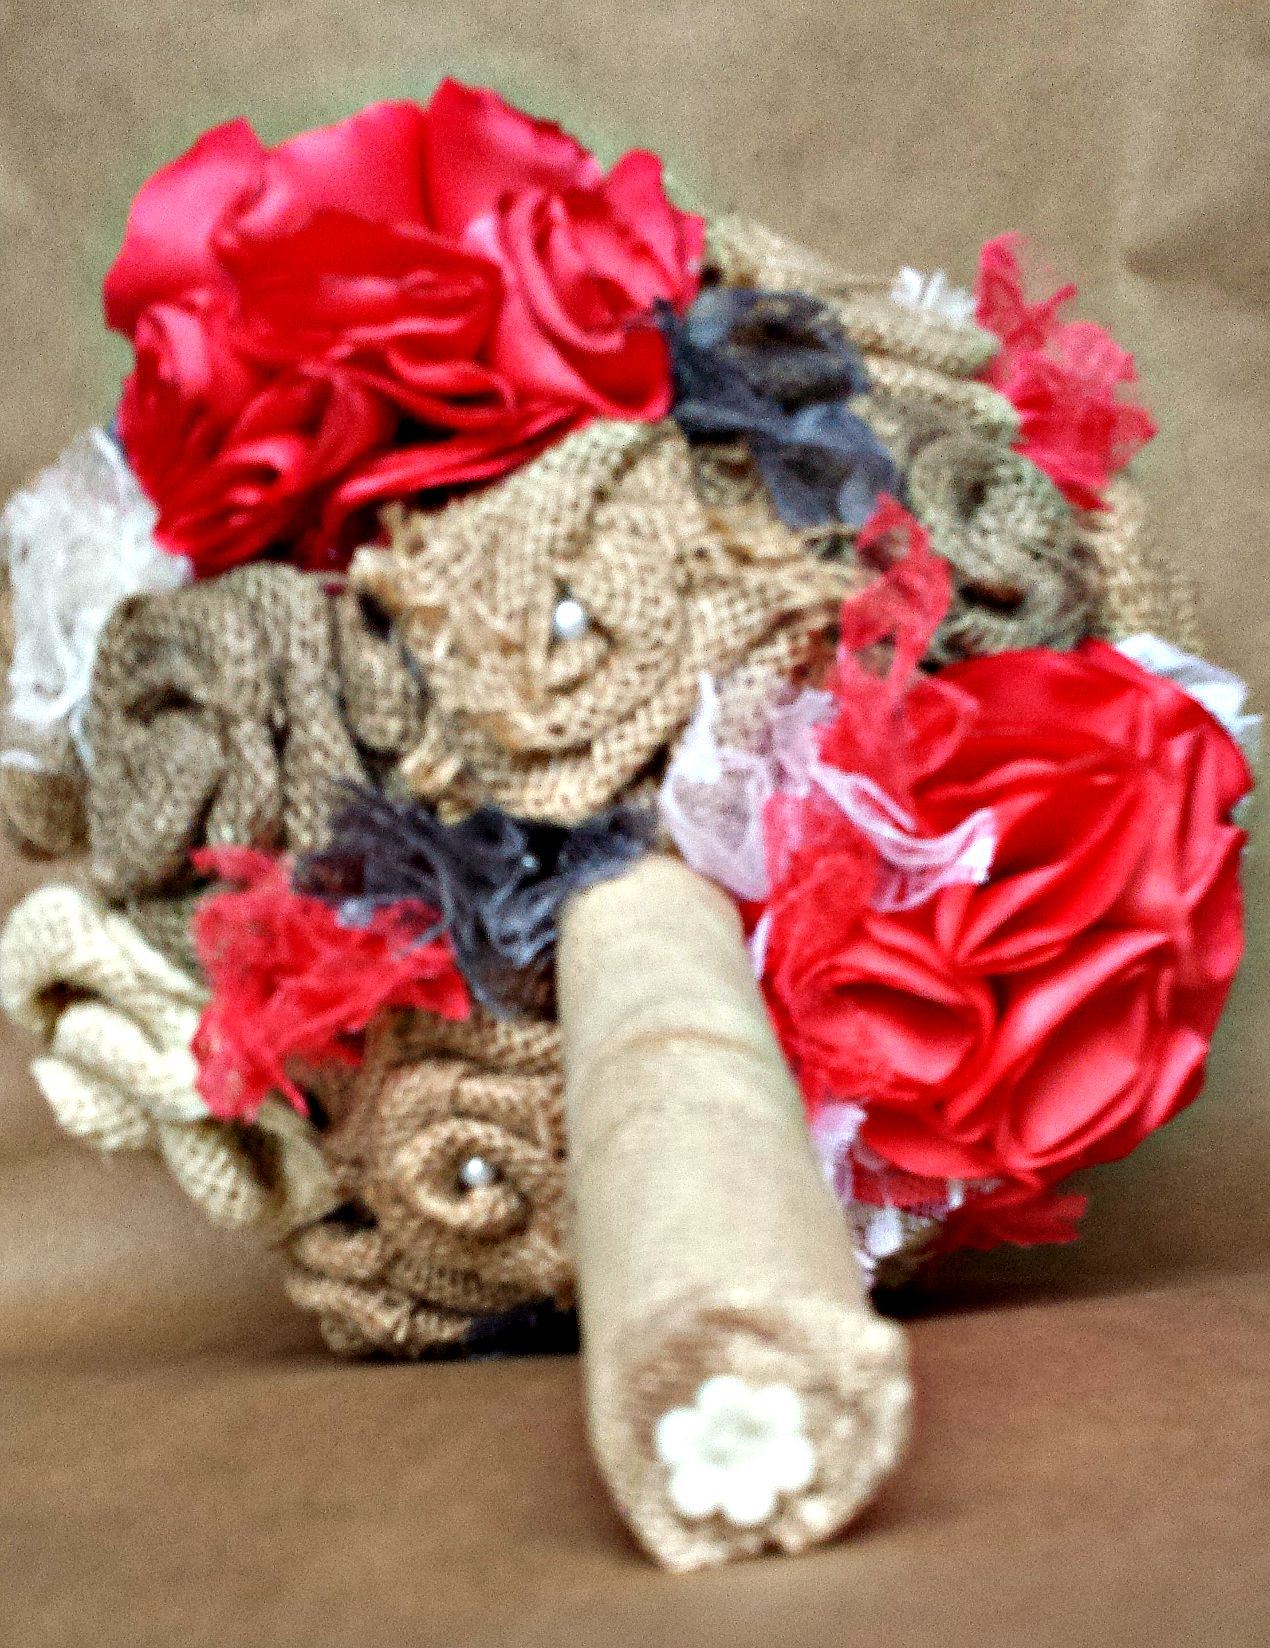 DIY Fabric Flower Bouquet Using Burlap and Satin